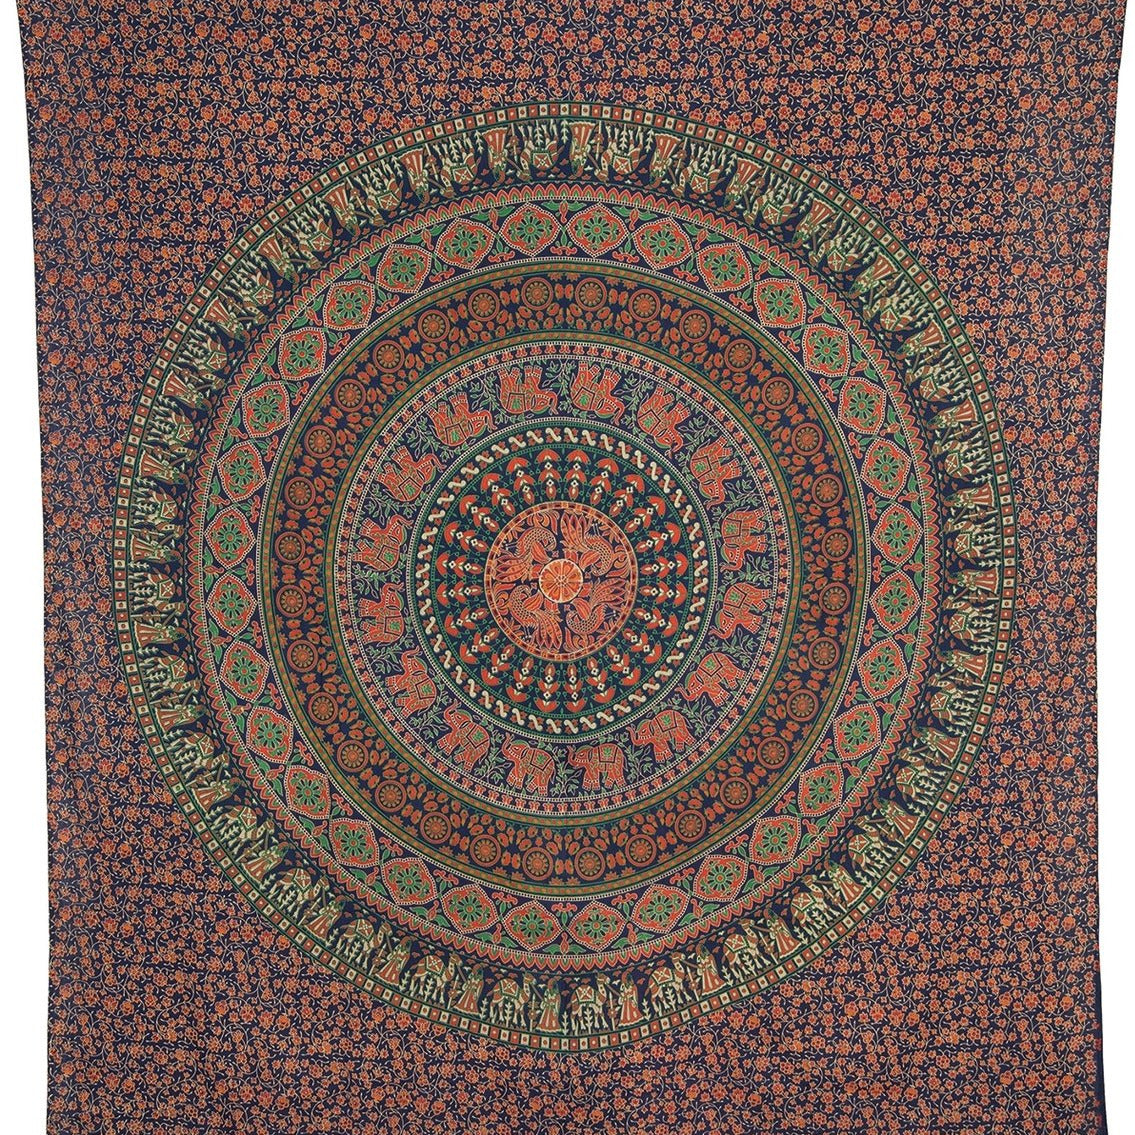 Kadi Elephant Mandala Tapestry, Bohemian Wall Hanging and Bedspread (Large, 7 X 8 Feet, Blue, 100% Cotton, Fair Trade Certified)